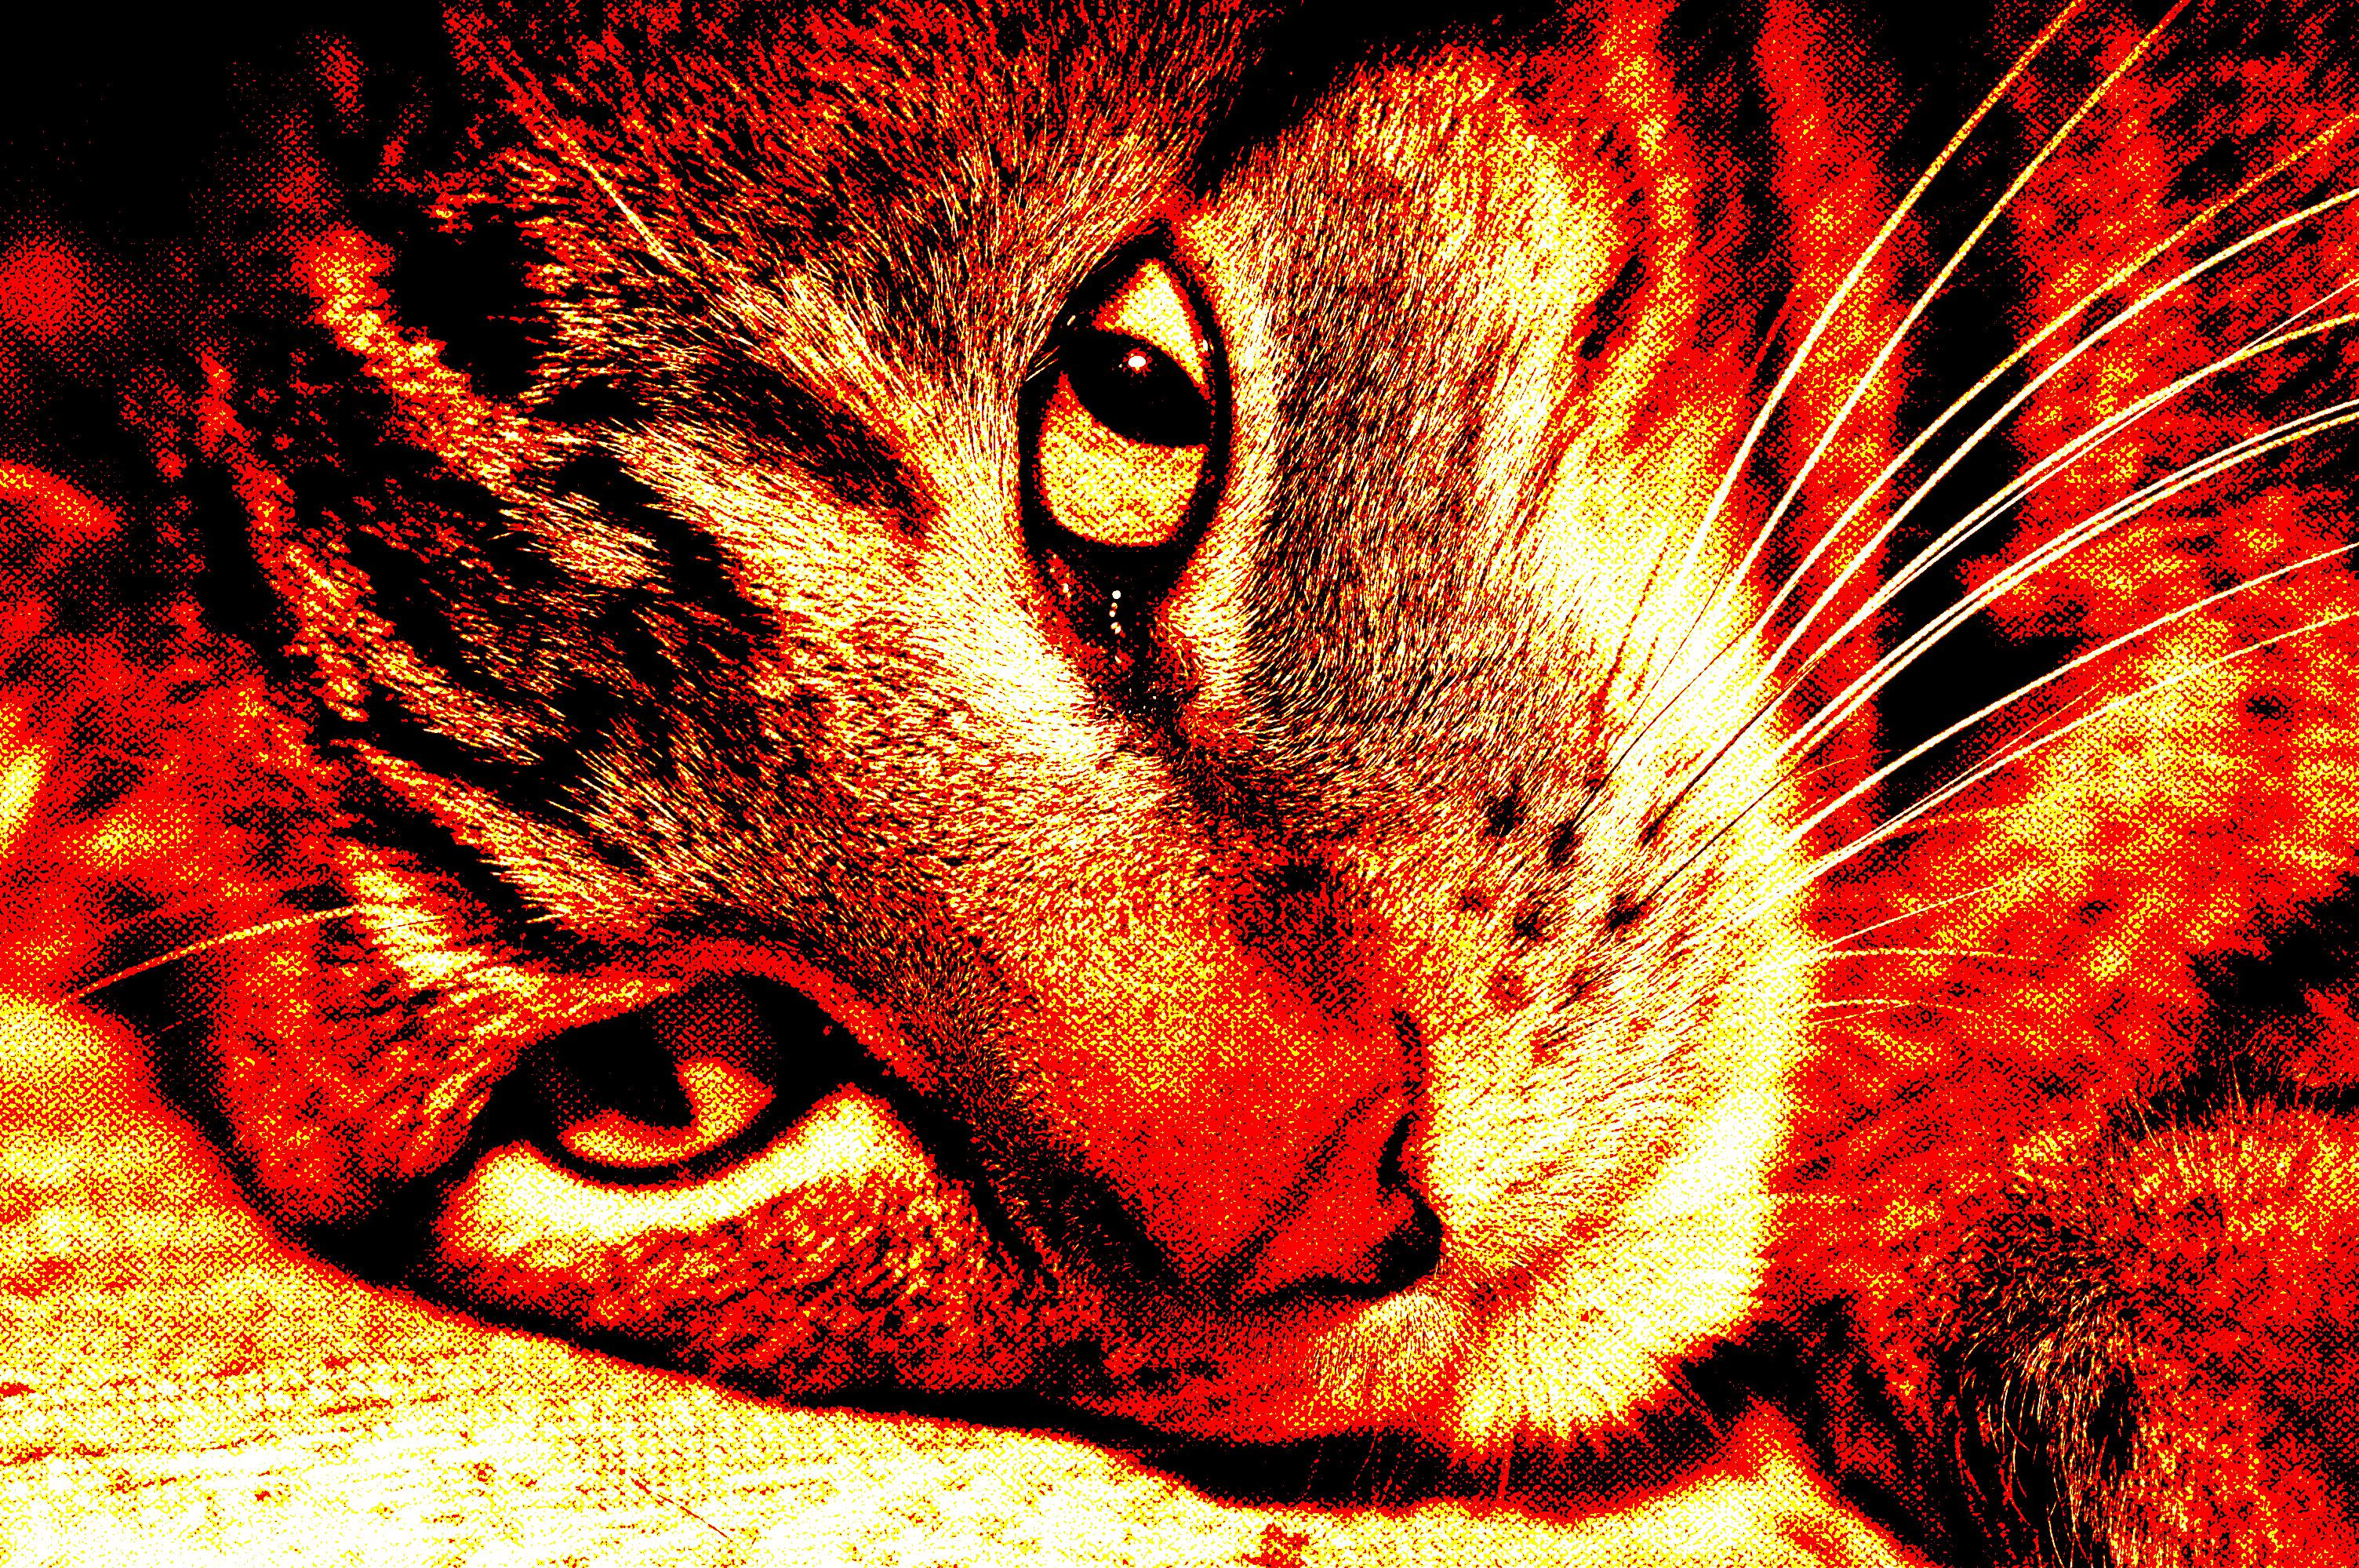 A tabby cat with sepia tones and dithering applied